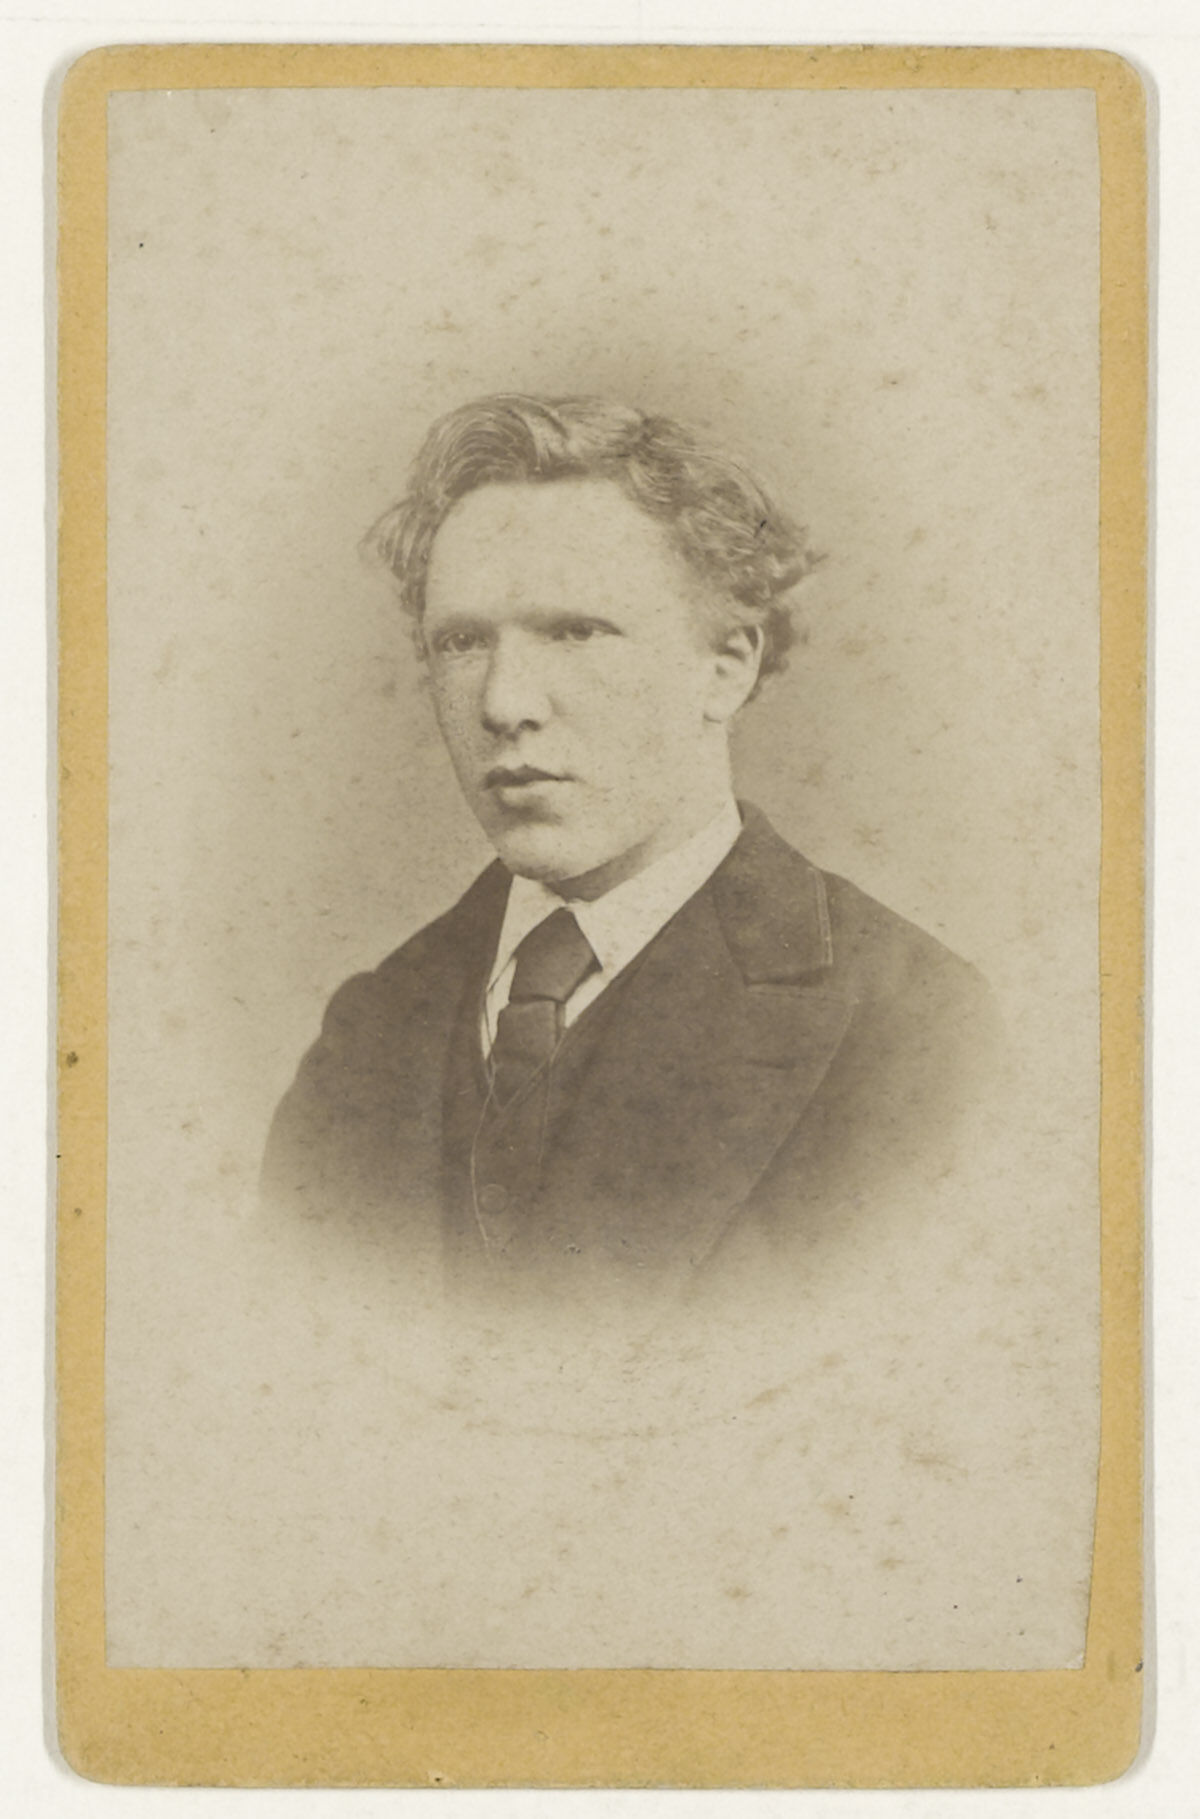 A portrait of Vincent van Gogh at age 19, taken in January 1873. Courtesy the Van Gogh Museum, courtesy Wikimedia Commons.